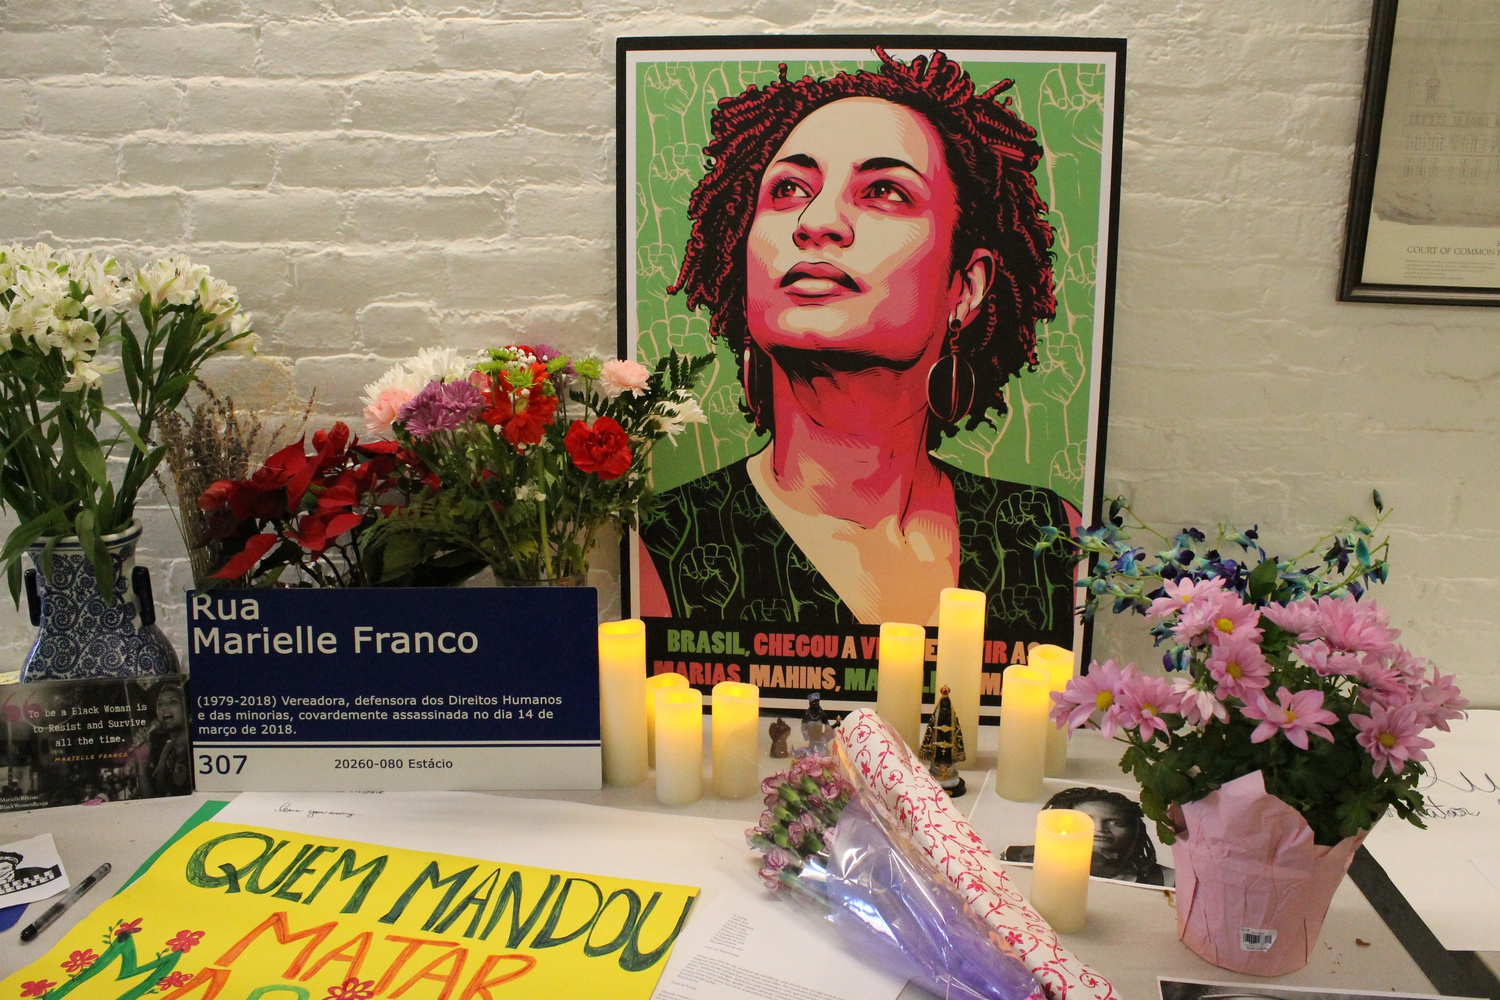 A memorial honors the one-year anniversary of Marielle Franco's killing in Brazil. Franco was a city councilor in Rio de Janeiro and an activist for women's and BGLTQ rights.